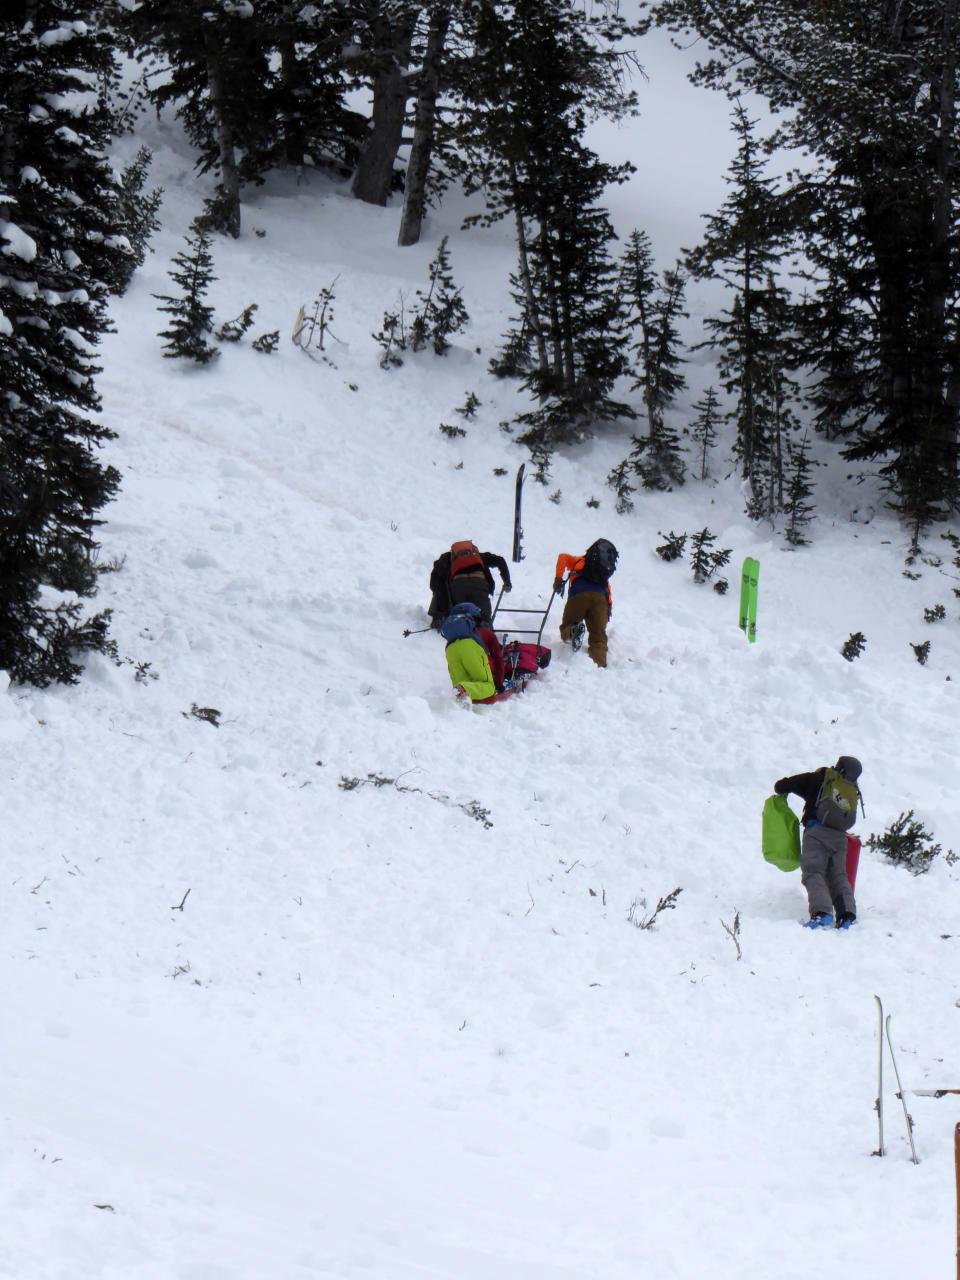 This aerial photo provided by Gallatin National Forest Avalanche Center shows a ground team approaching the area of an avalanche in the Gallatin National Forest, Mont., on Sunday, Feb. 14, 2021. A backcountry skier Craig Kitto, 45, of Bozeman, suffered fatal injuries when the Gallatin National Forest slope he and a companion were climbing cracked without warning, collapsed and swept him downhill into a tree. The other person wasn't hurt. (Gallatin National Forest Avalanche Center via AP)